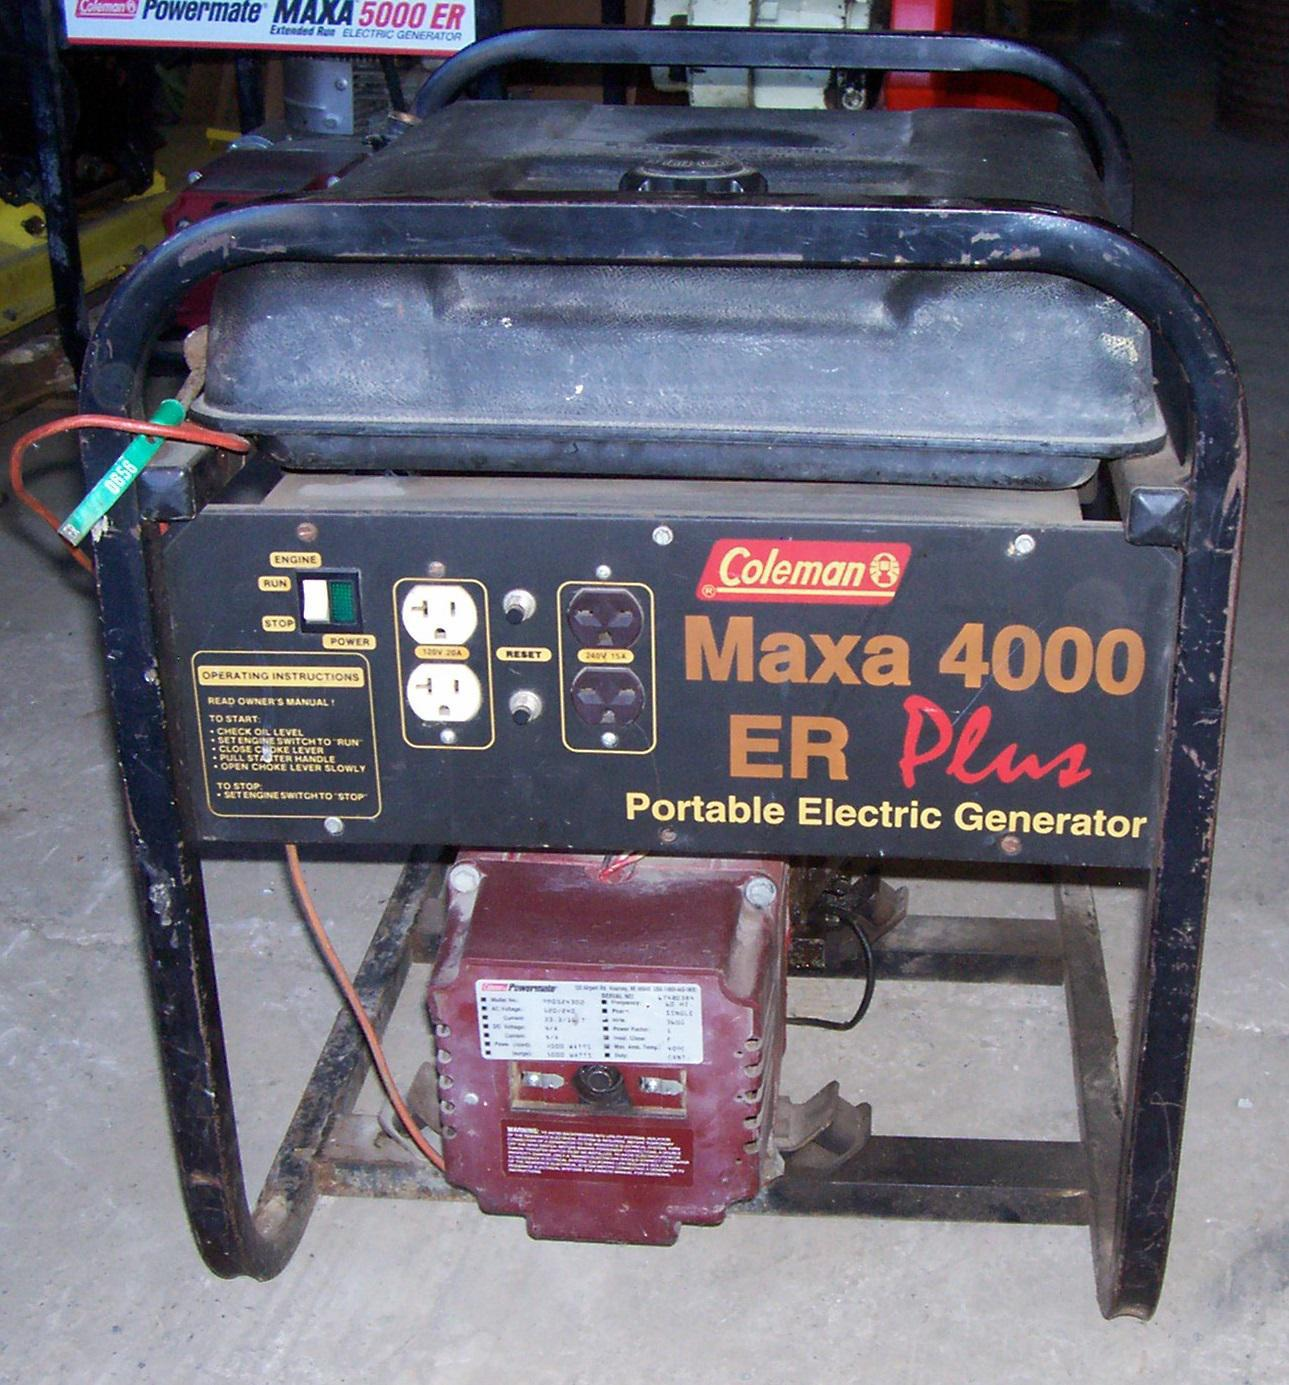 Coleman Maxa 4000 Er Plus For Sale In New Tripoli Pa Coleman Maxa 4000 Er Plus For Sale In New Tripoli Pa Kermit K Kistler Inc New Tripoli Pa 610 298 2011